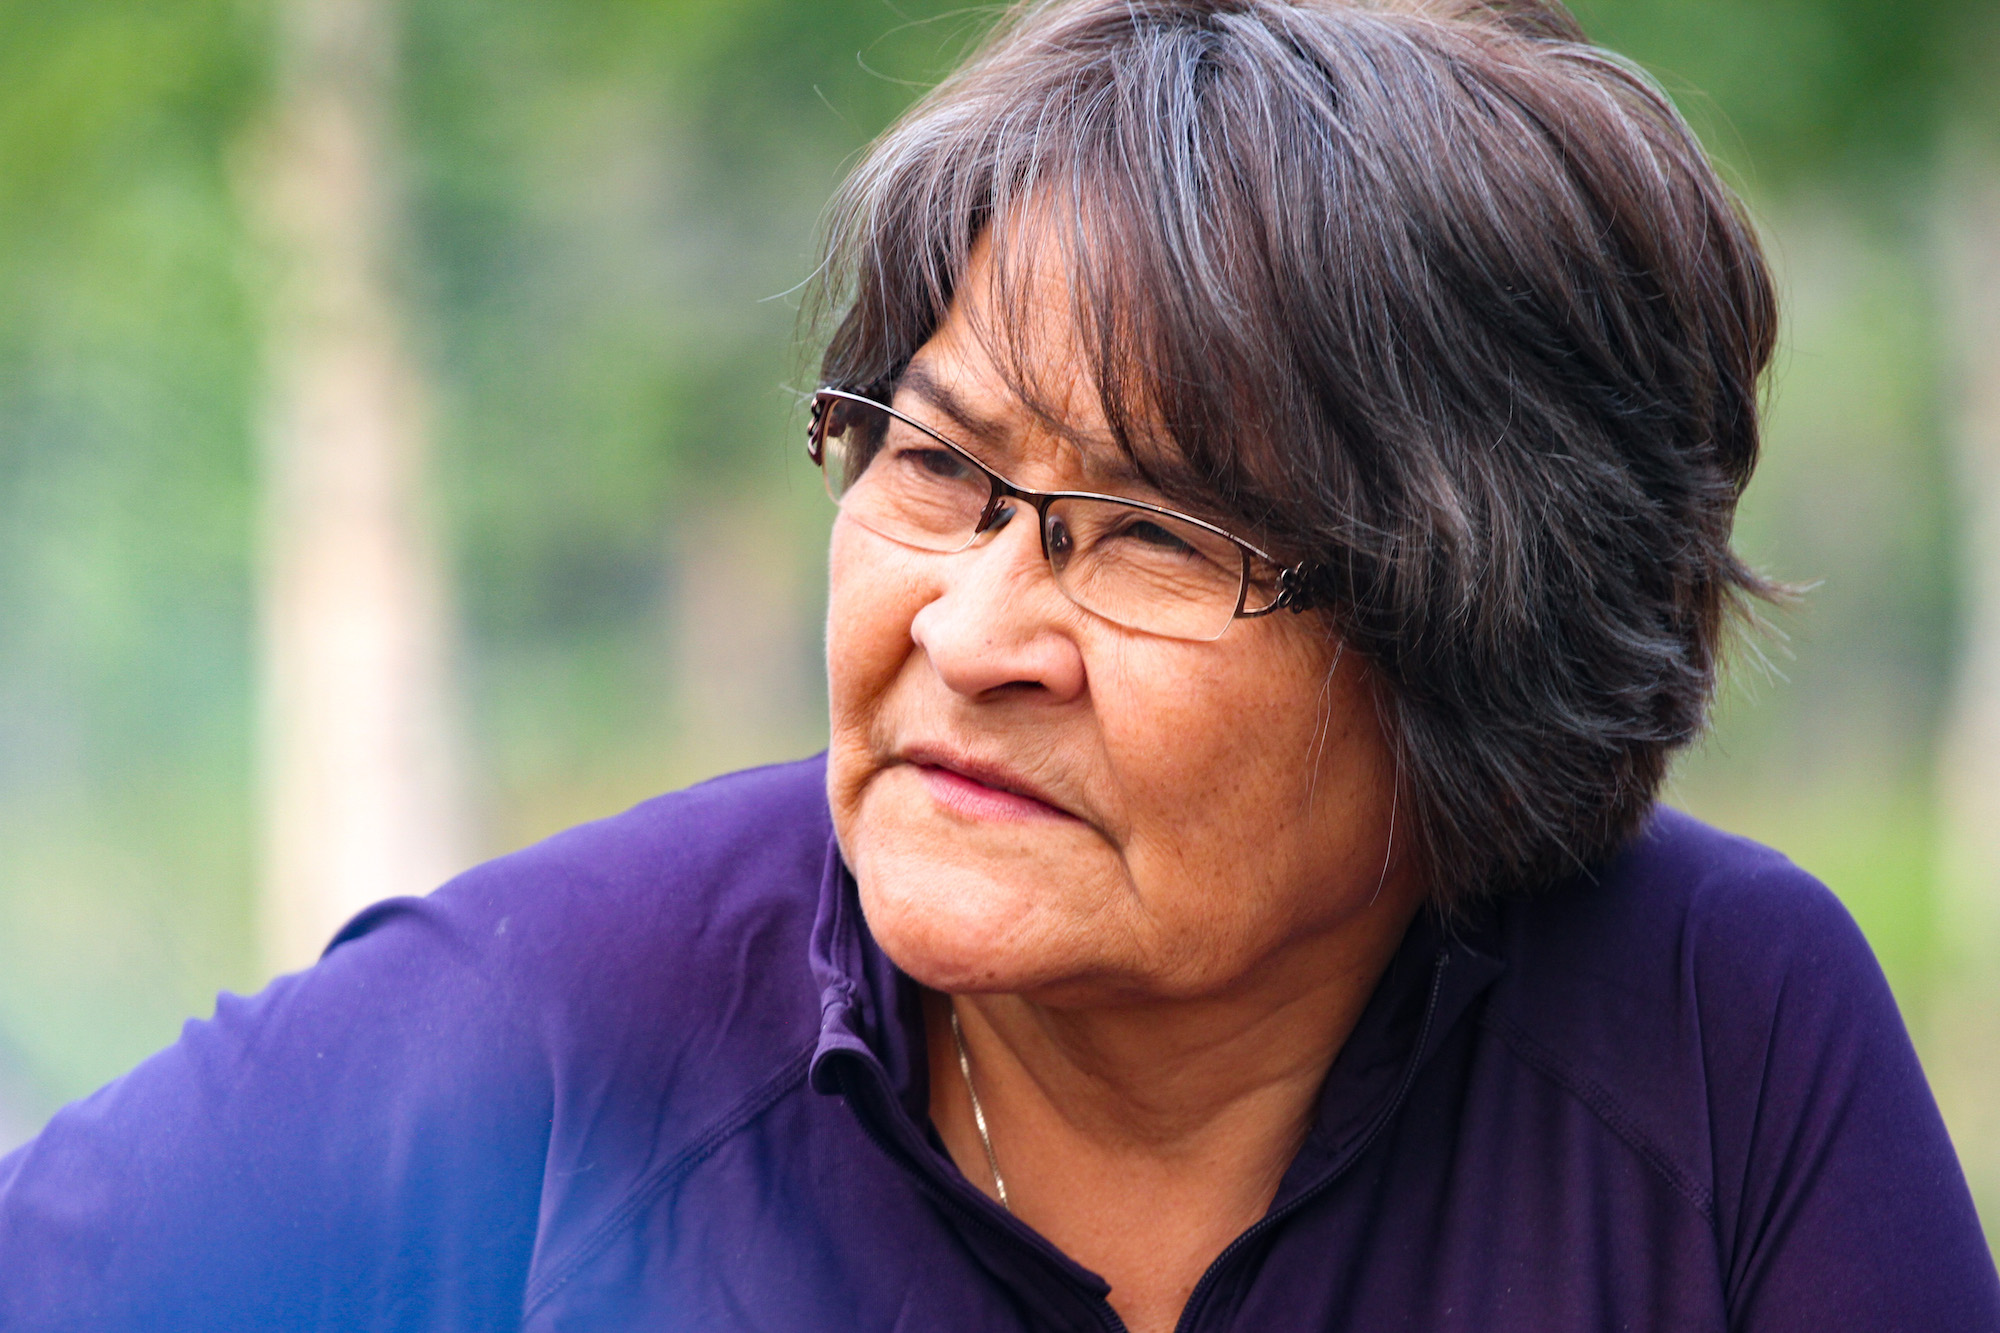 Louise Creyke, born and raised in Old Crow, can attest first-hand to the trauma caused by the residential school system. (Photo: Meaghan Brackenbury)